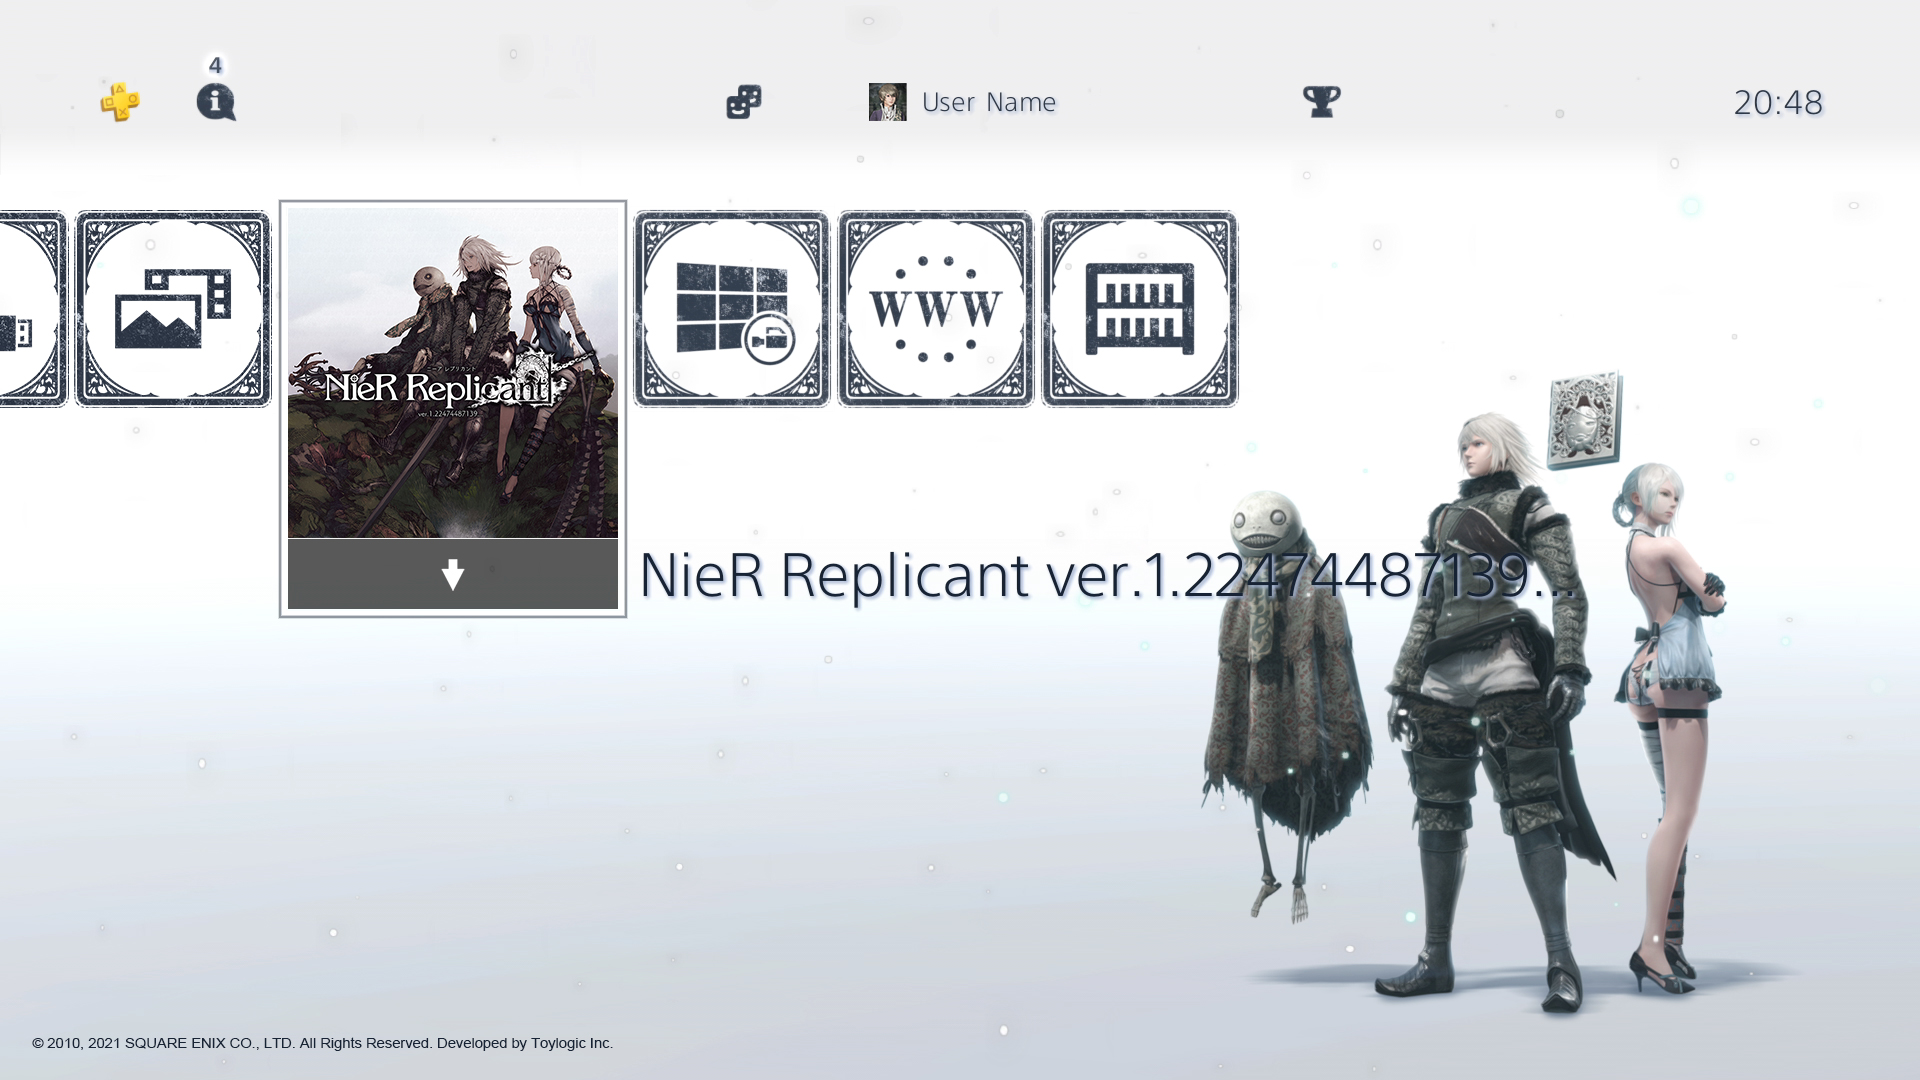 NieR-Replicant-background